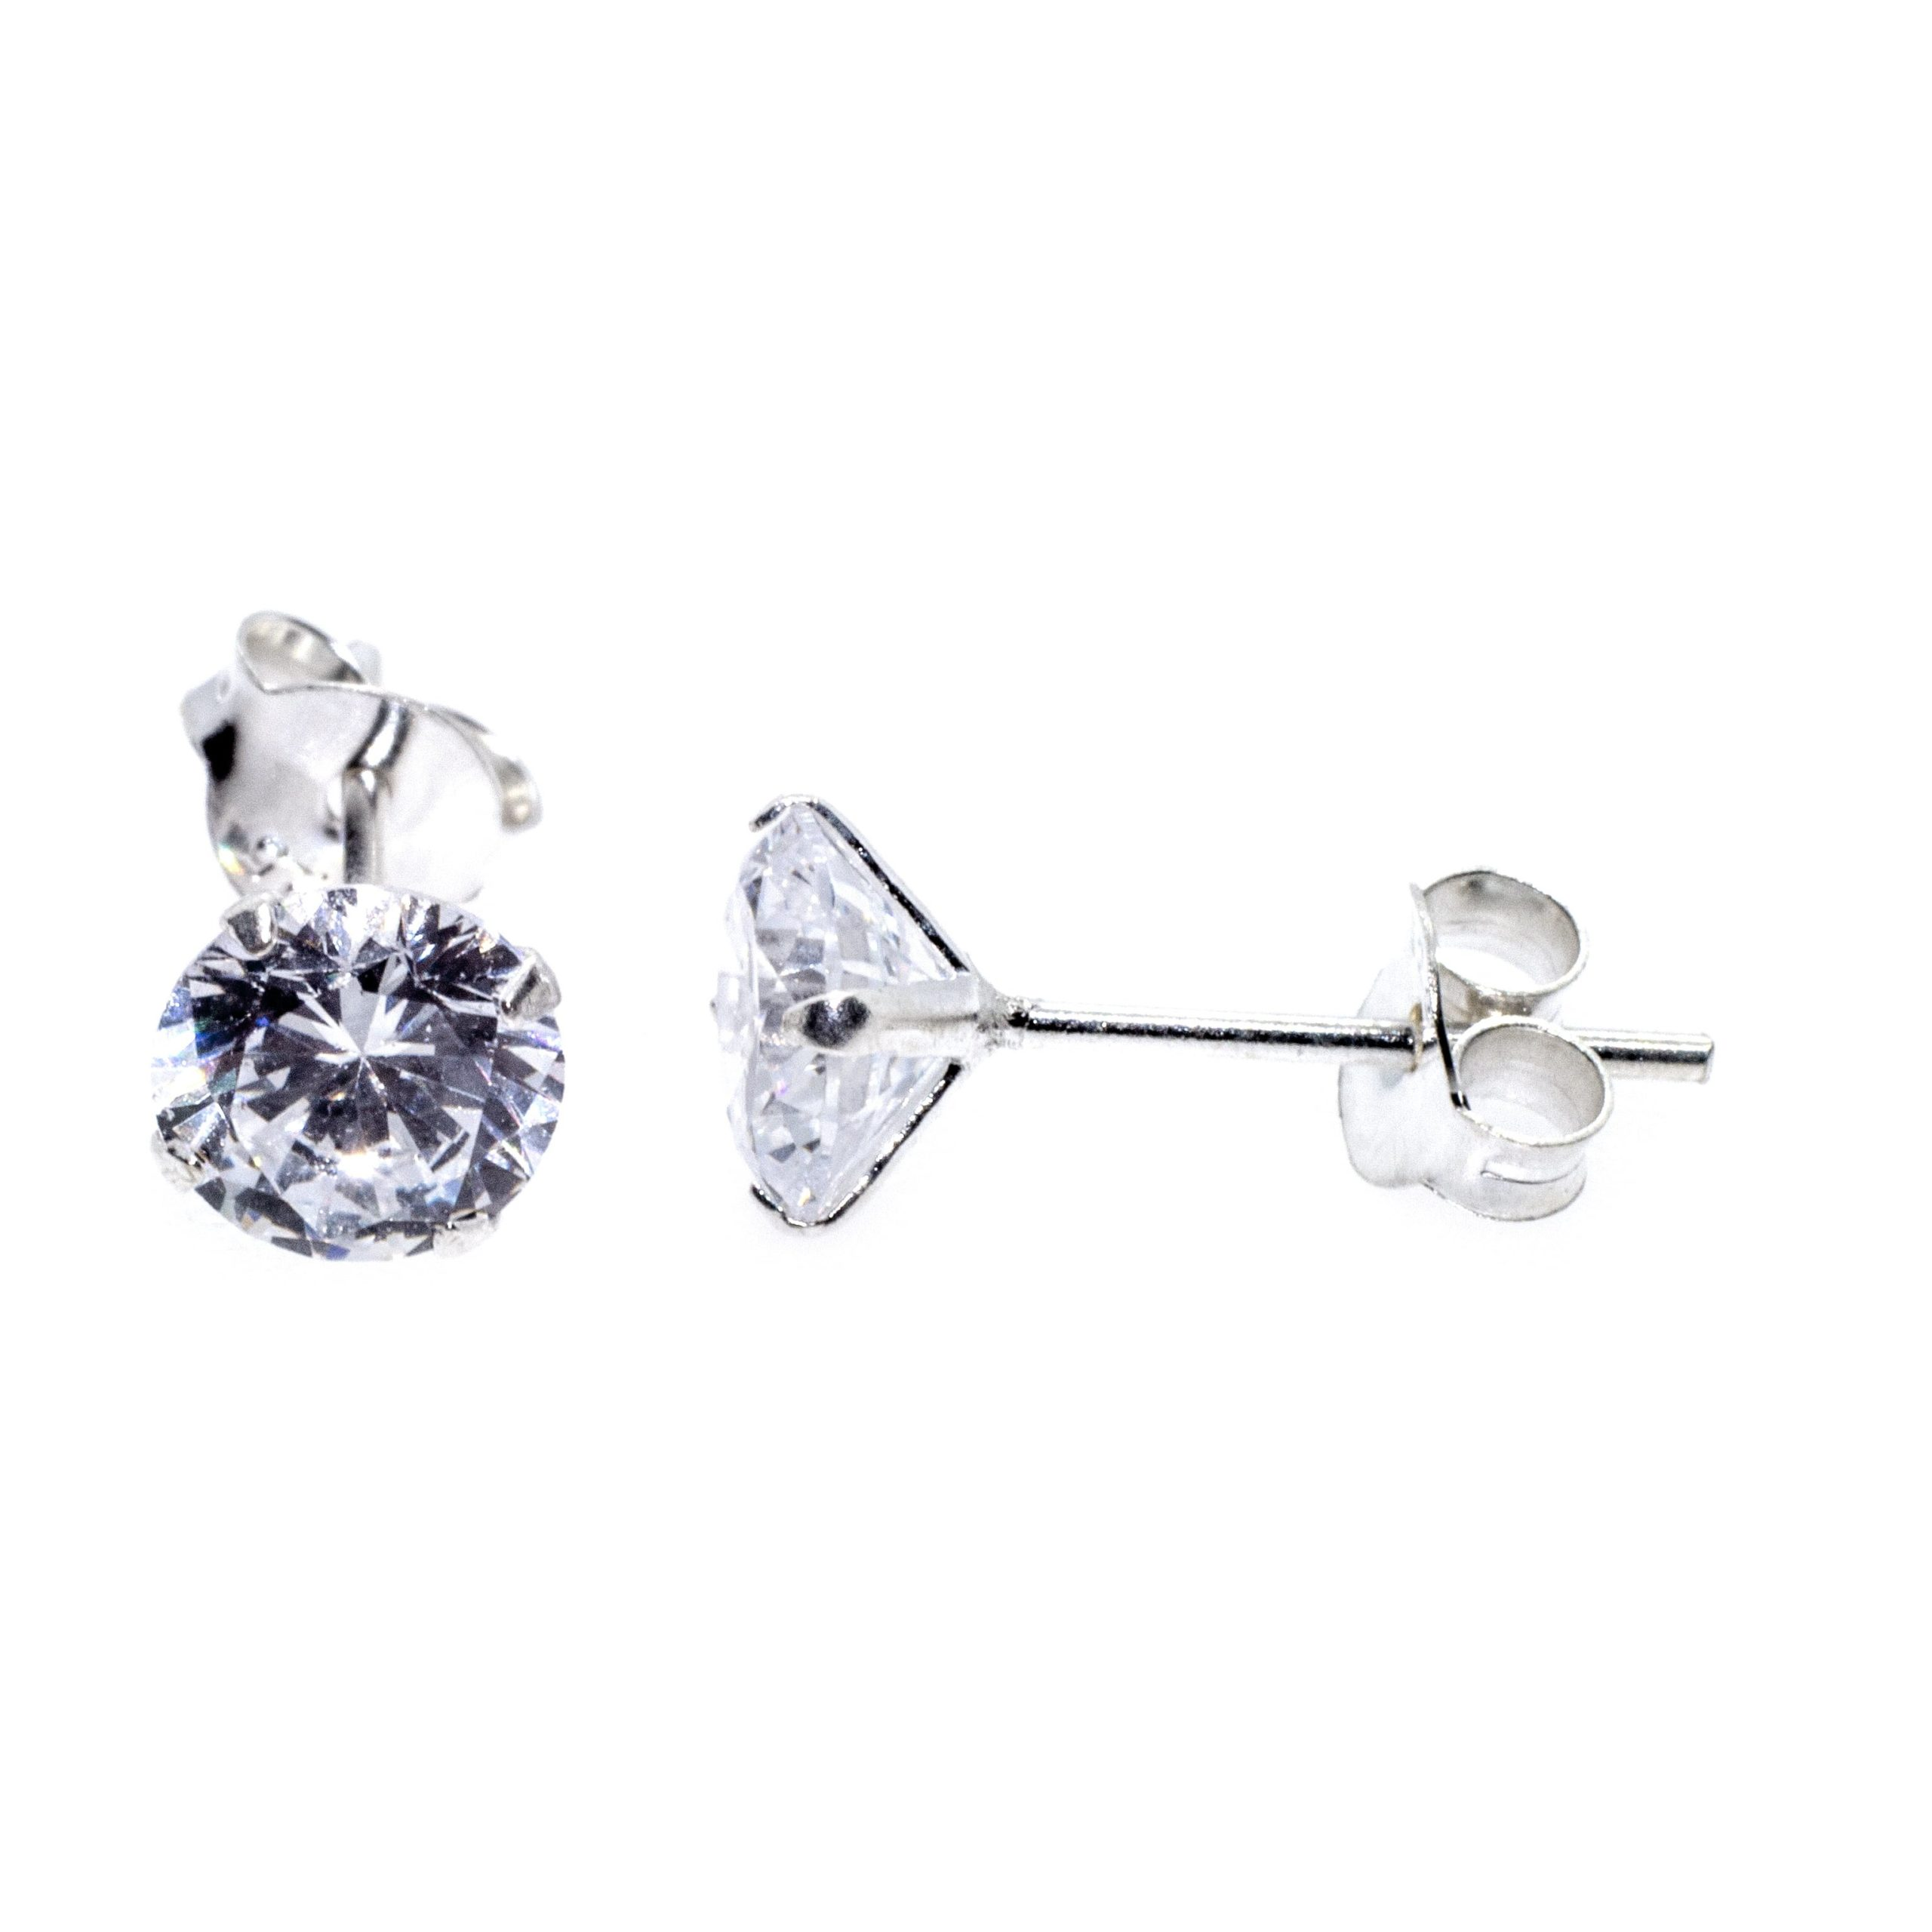 silver cz stud 6mm earrings